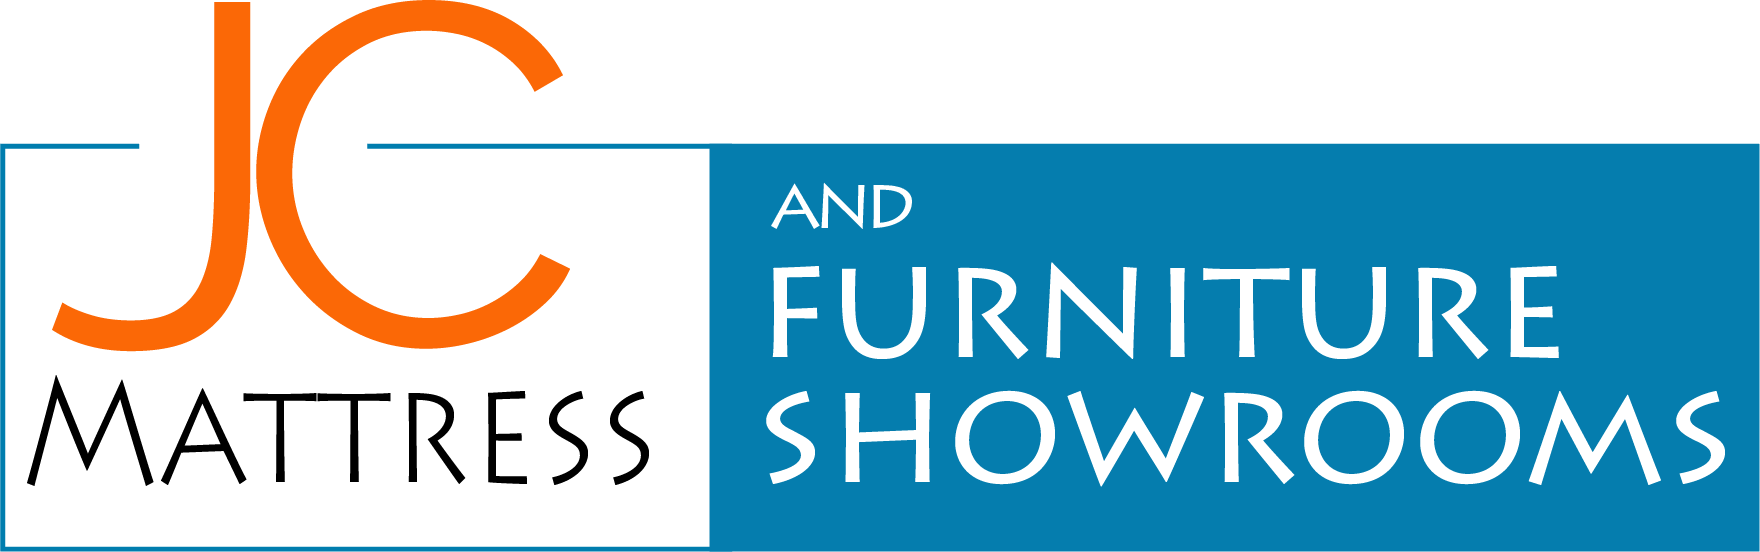 JC Mattress Factory Logo